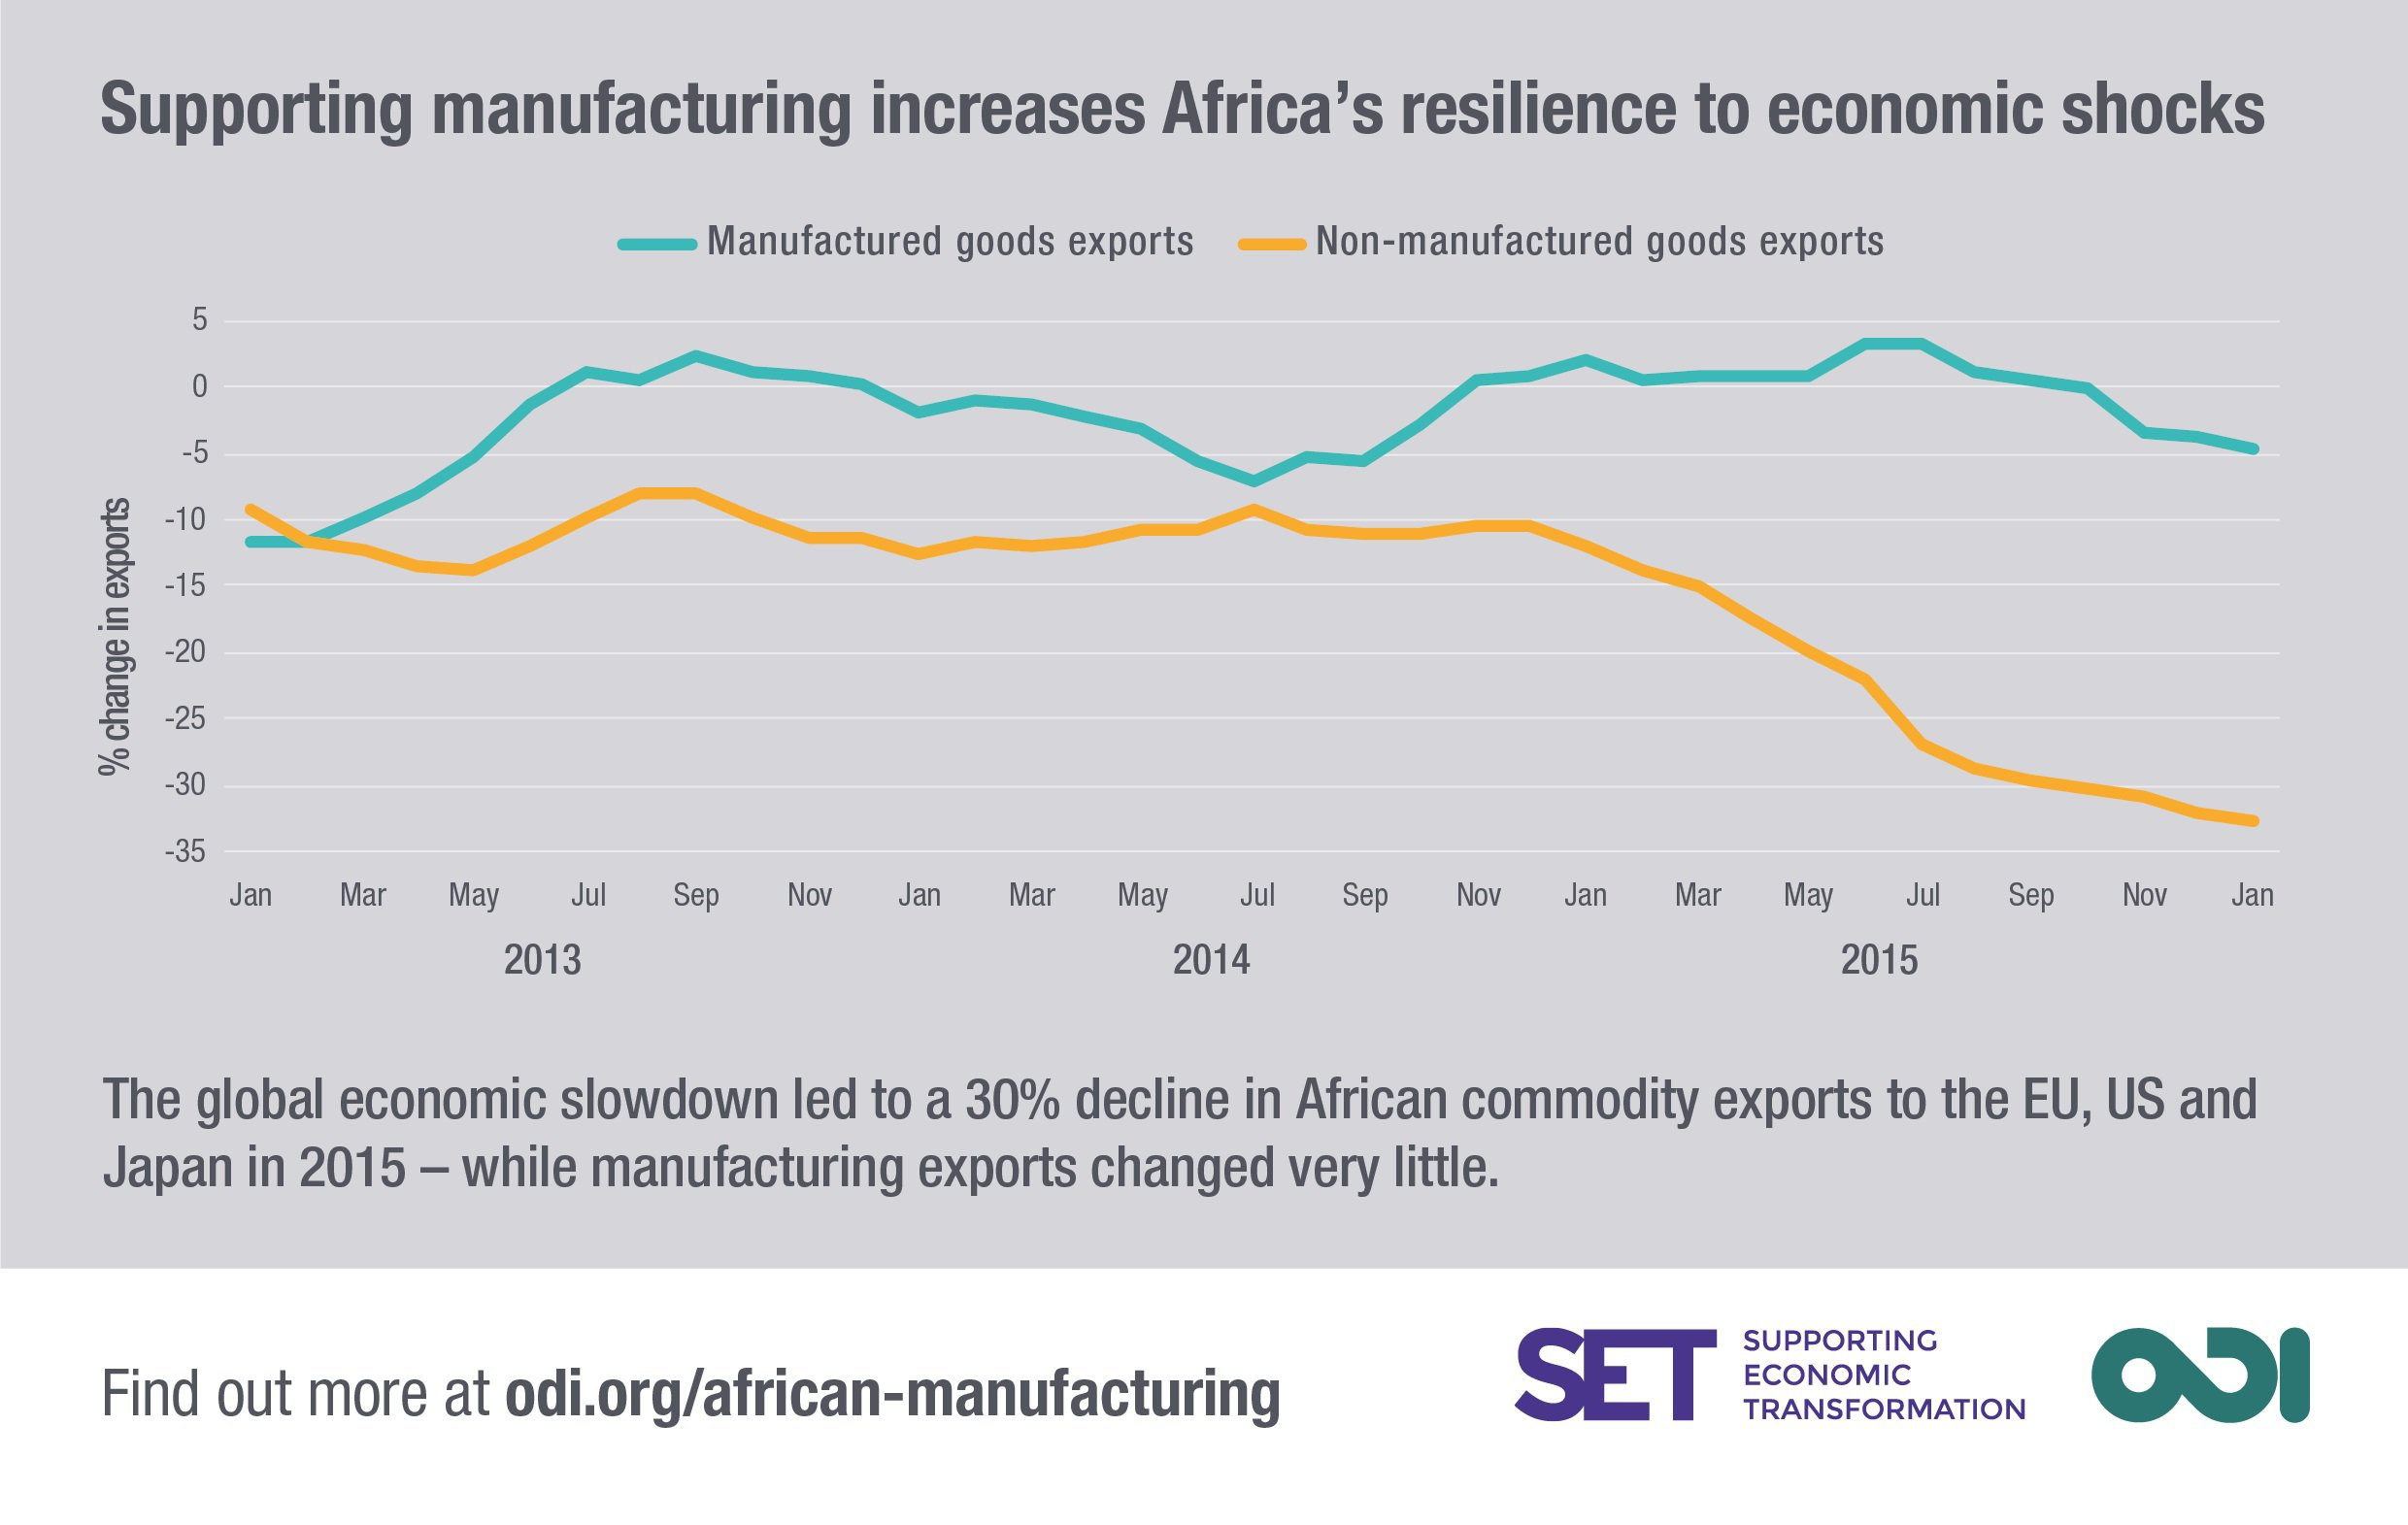 Infographic: manufacturing increases resilience to economic shocks